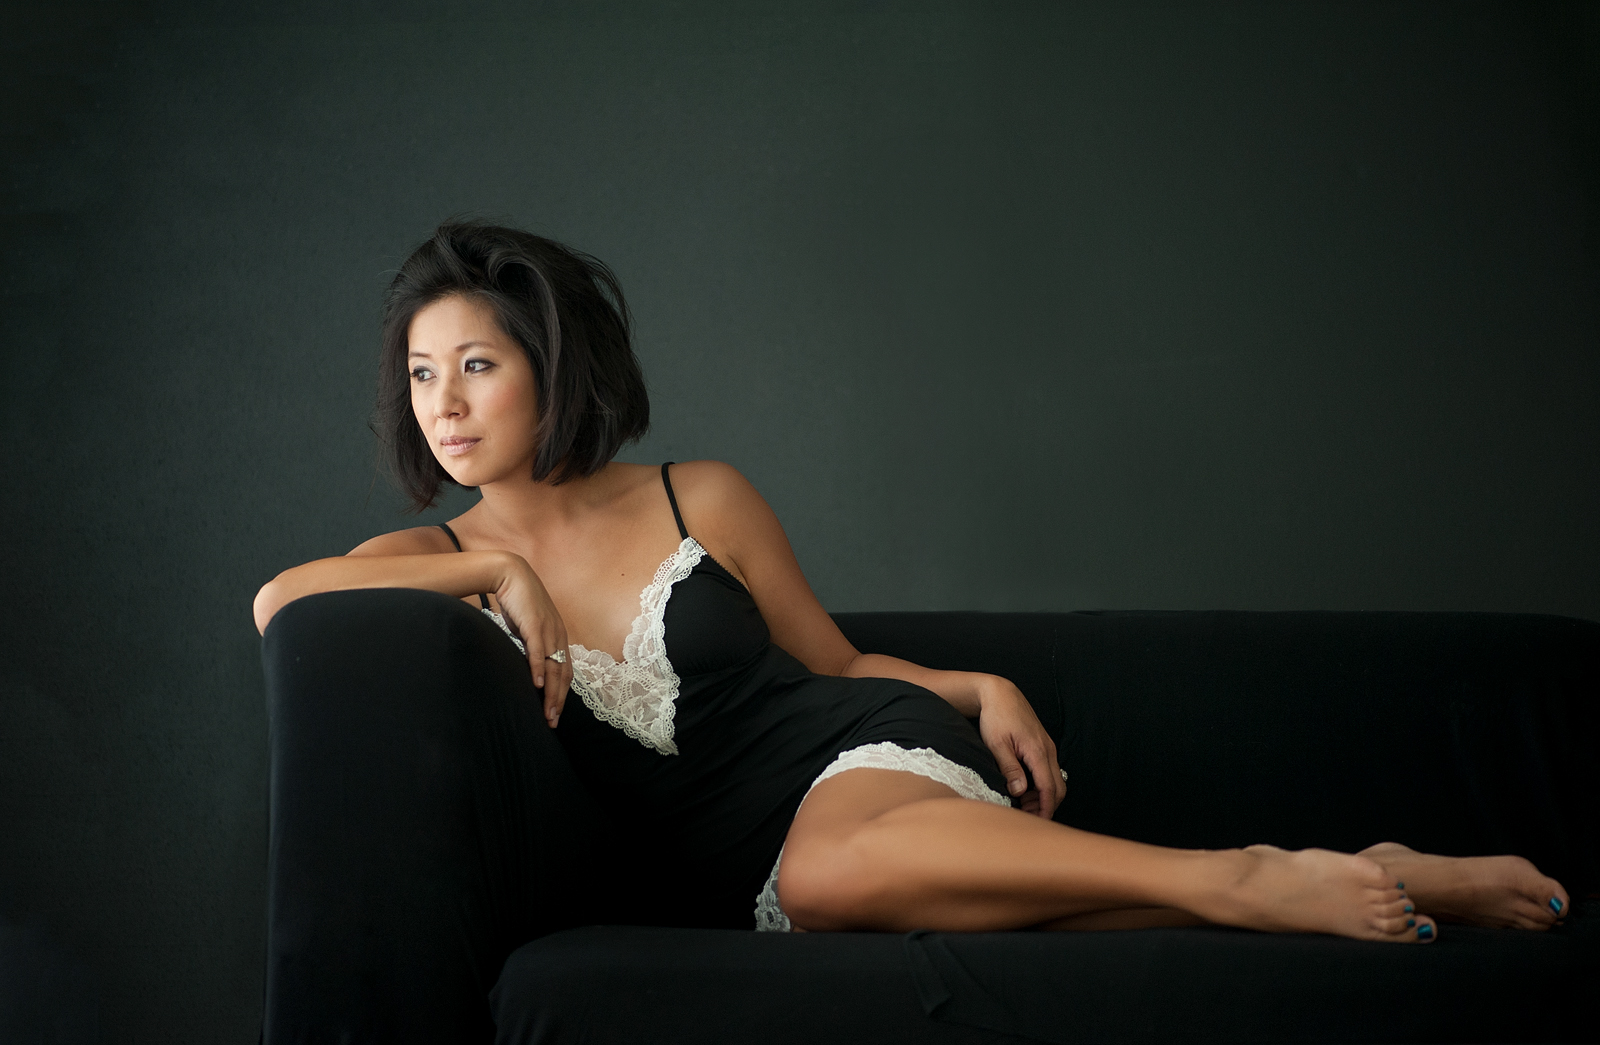 09-reclining-pose-lingerie-looking-away-introspection.jpg